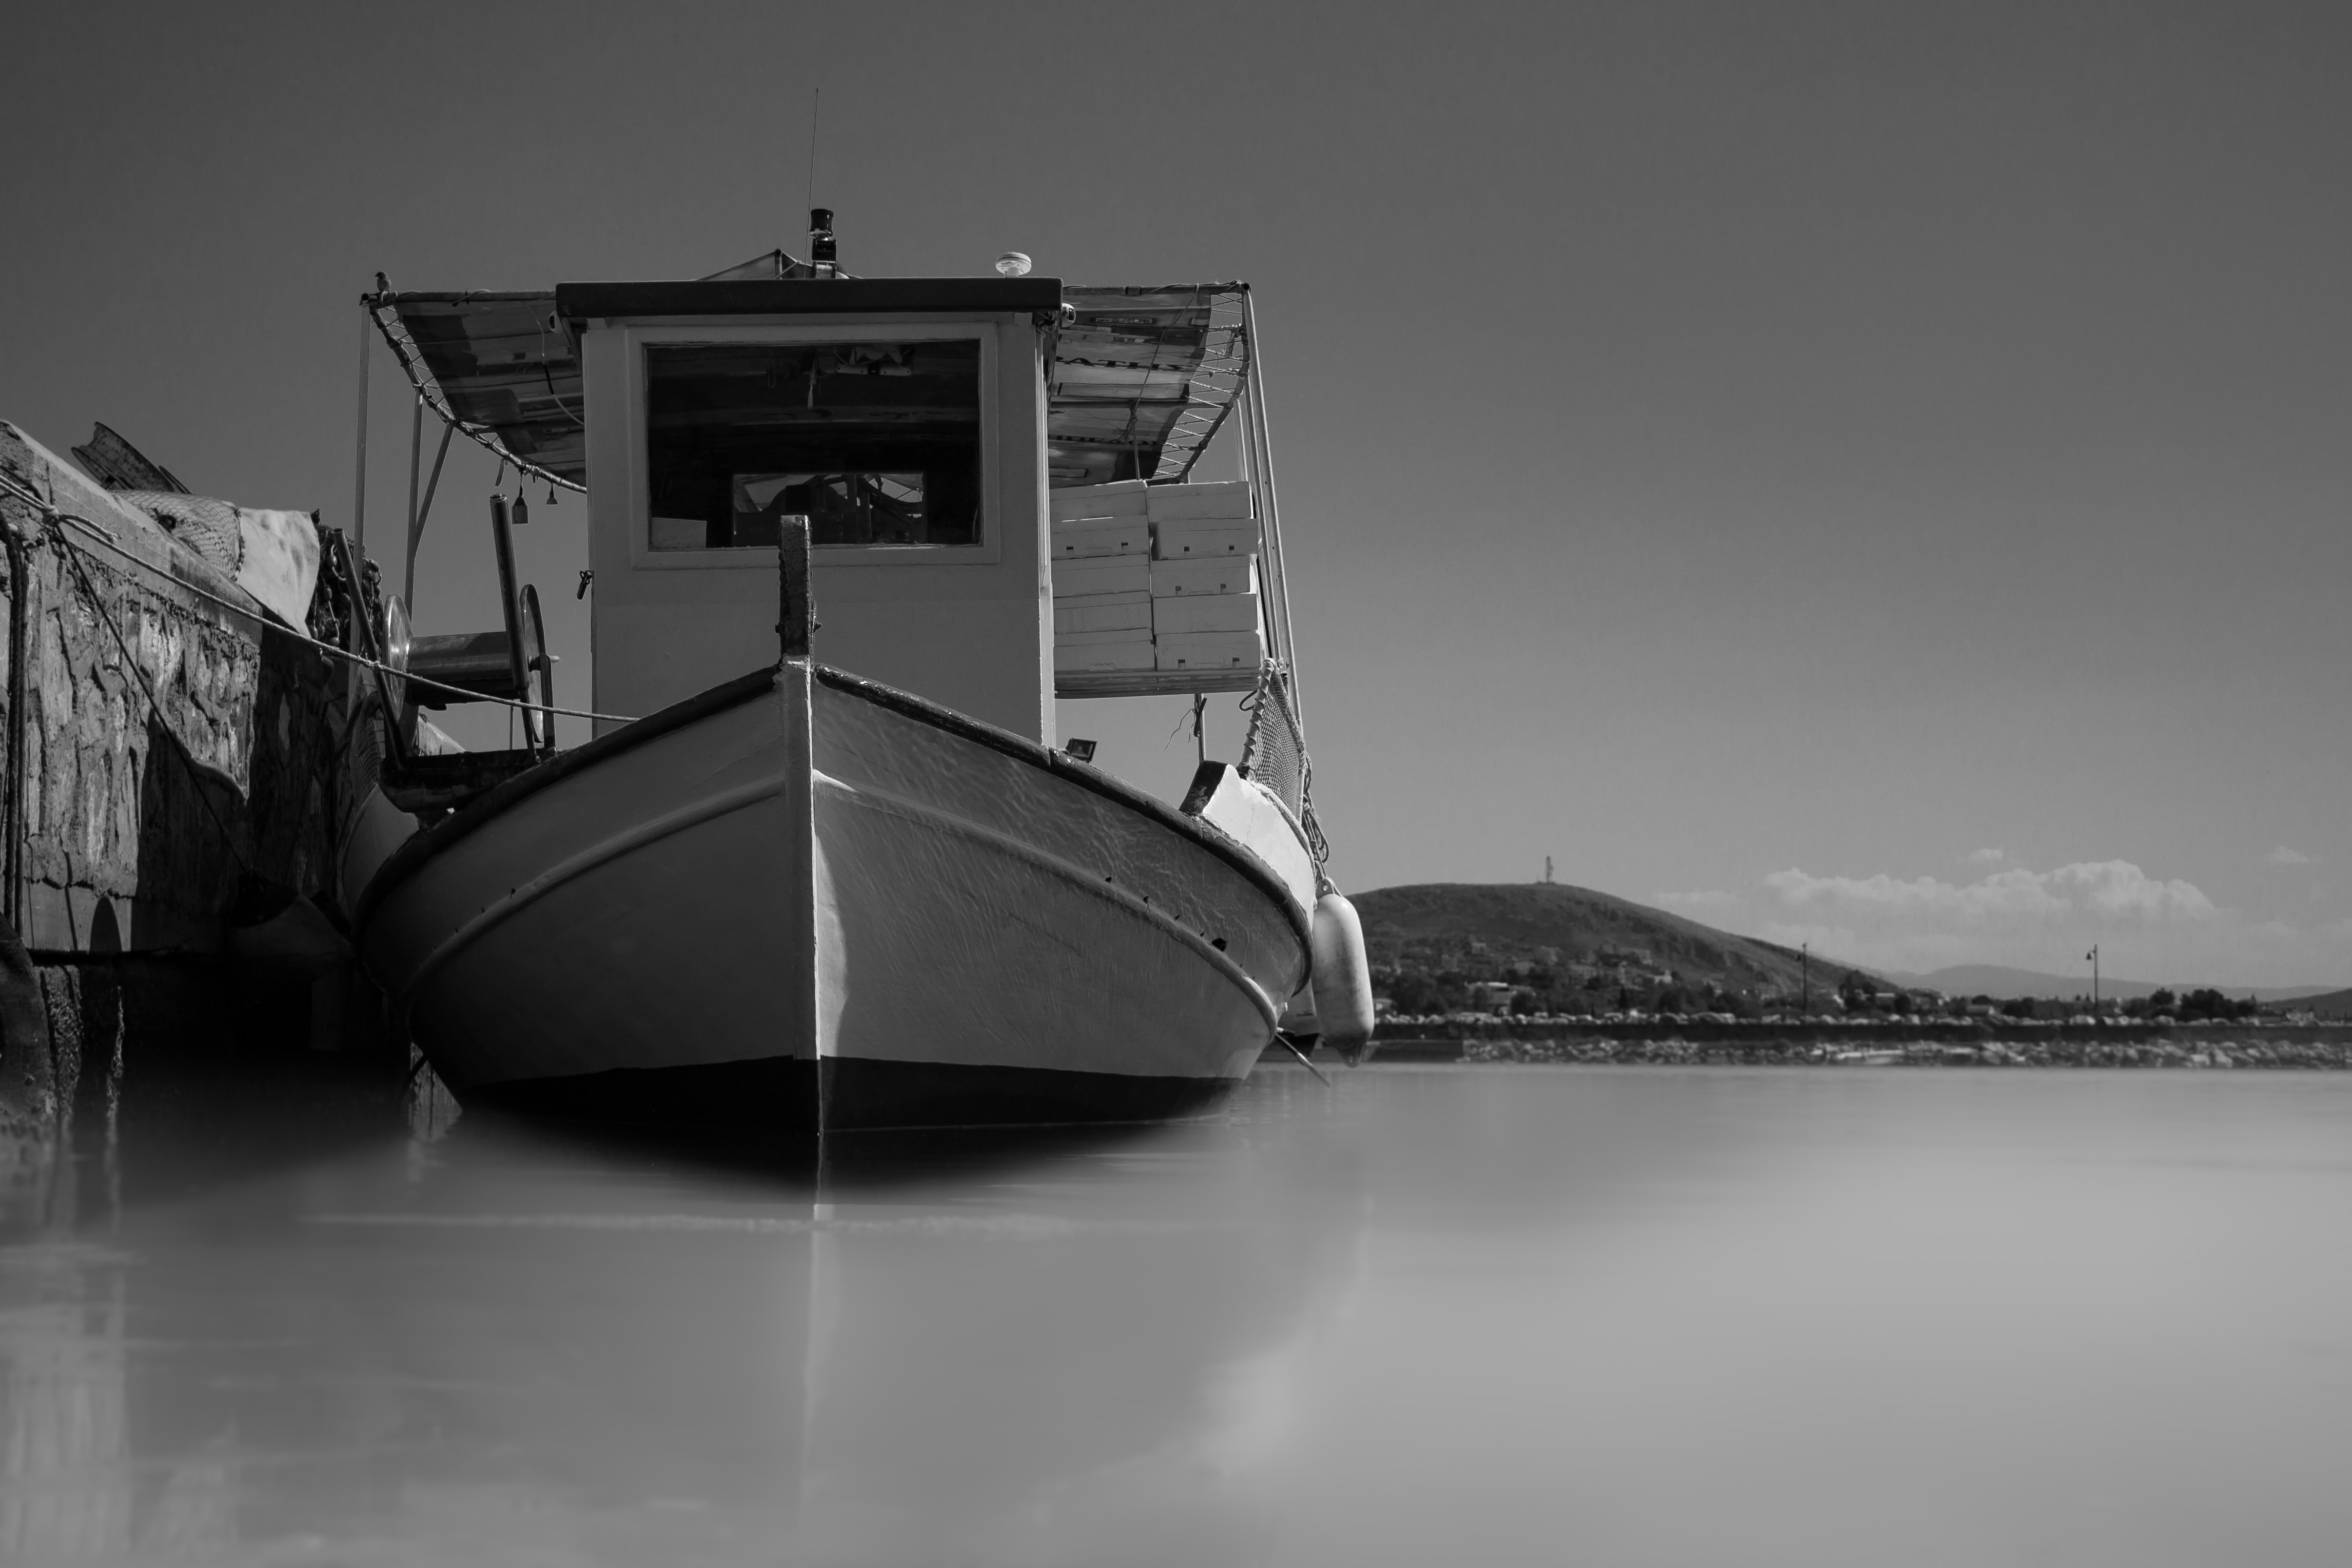 grayscale photography of boat near dock